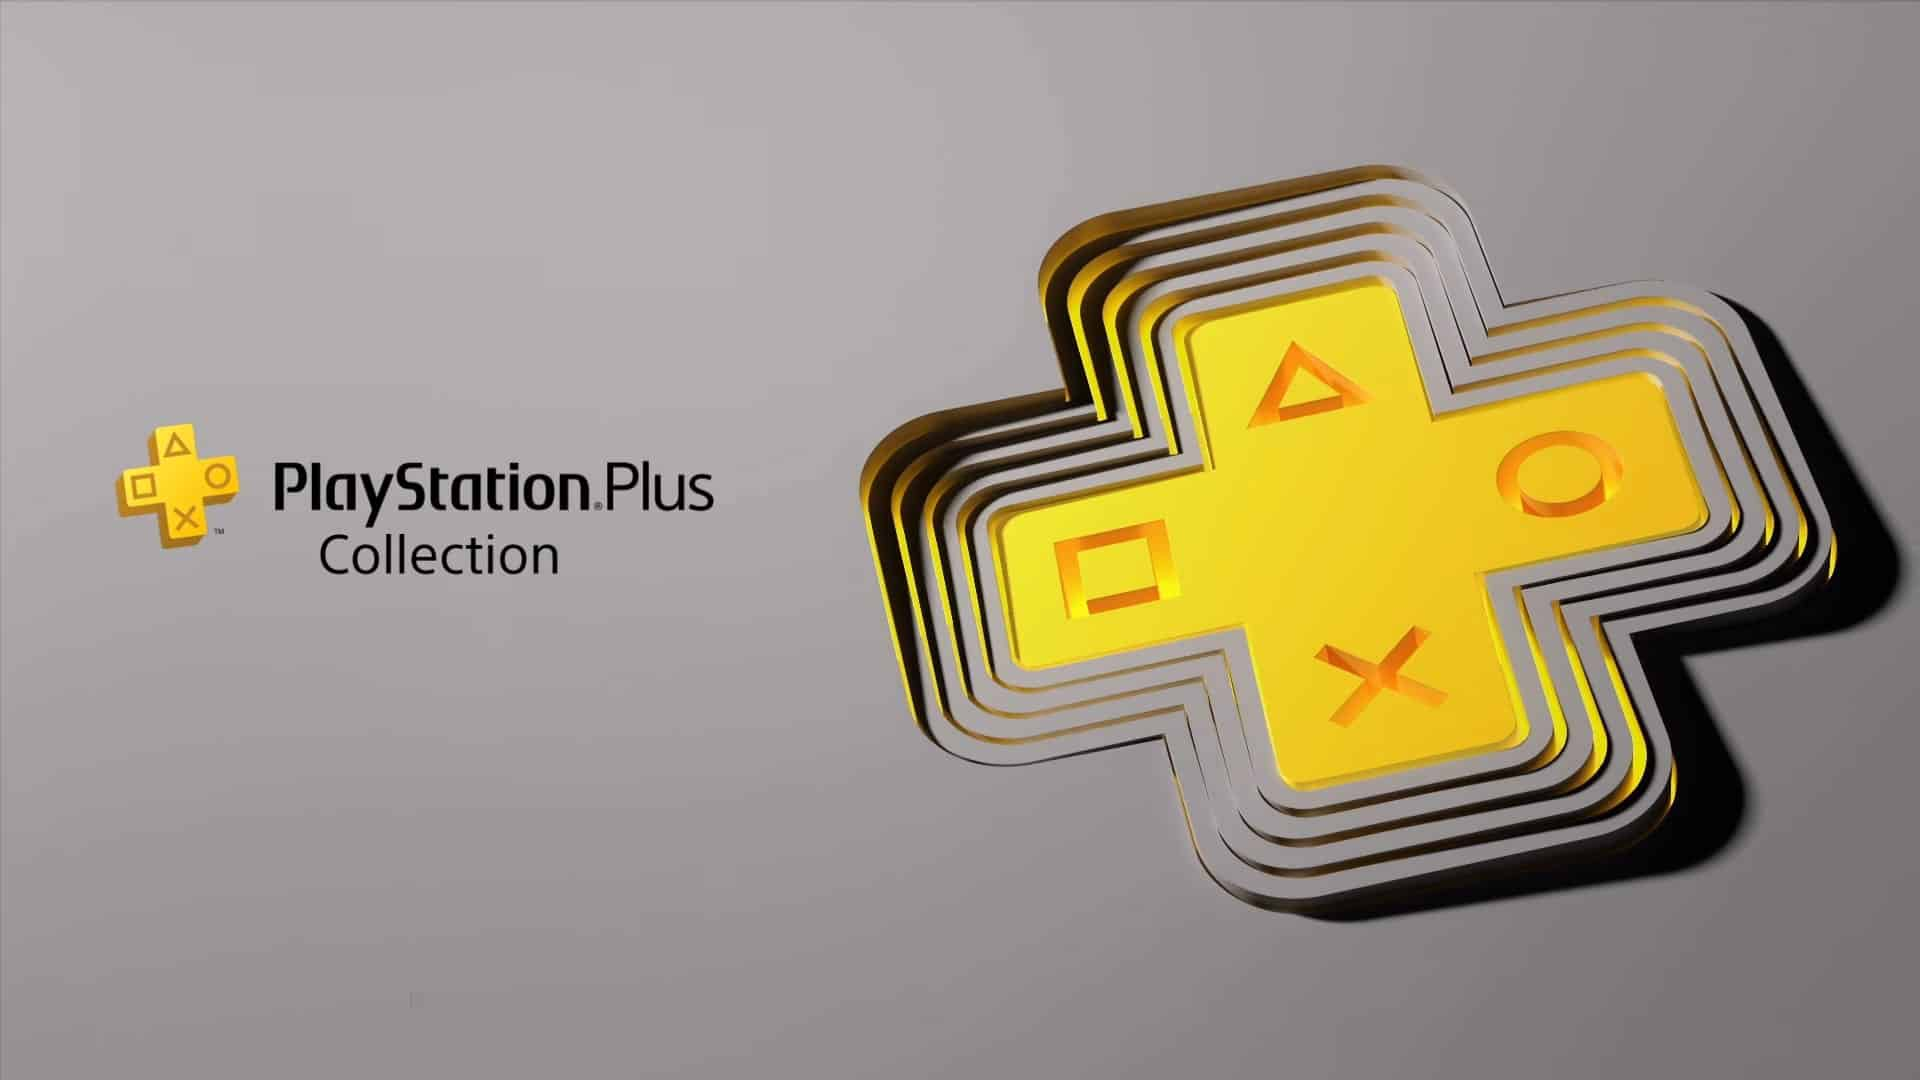 PS5 PS4 PlayStation Plus Collection August PlayStation Plus